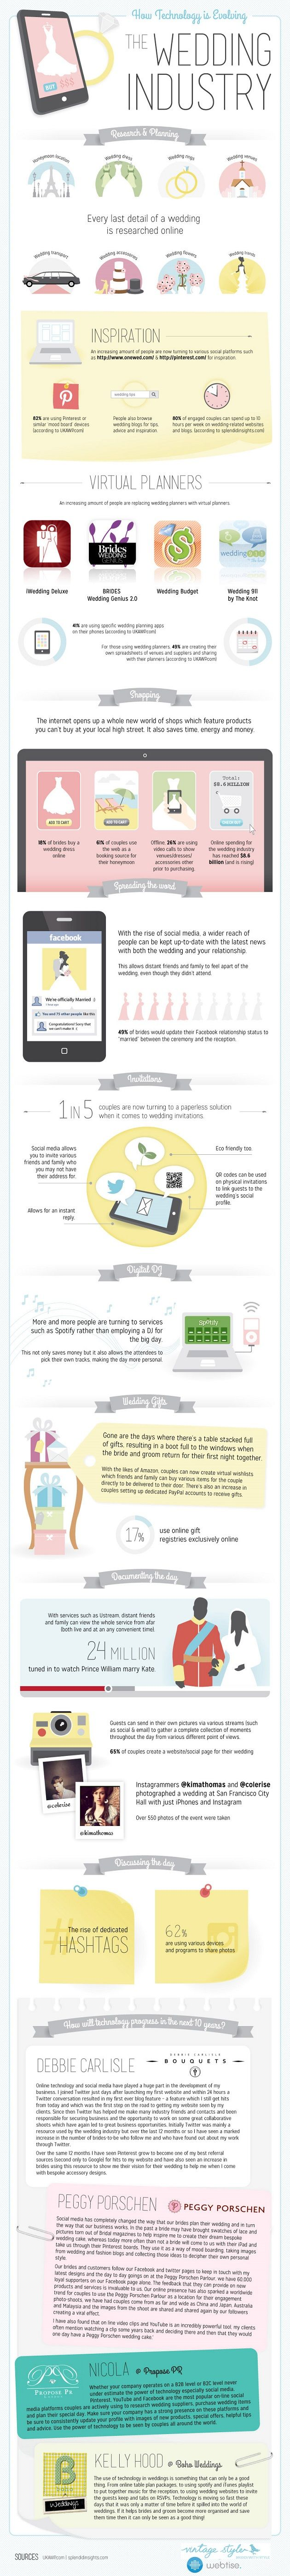 Infographic Here Comes the Tech Savvy Bride 216